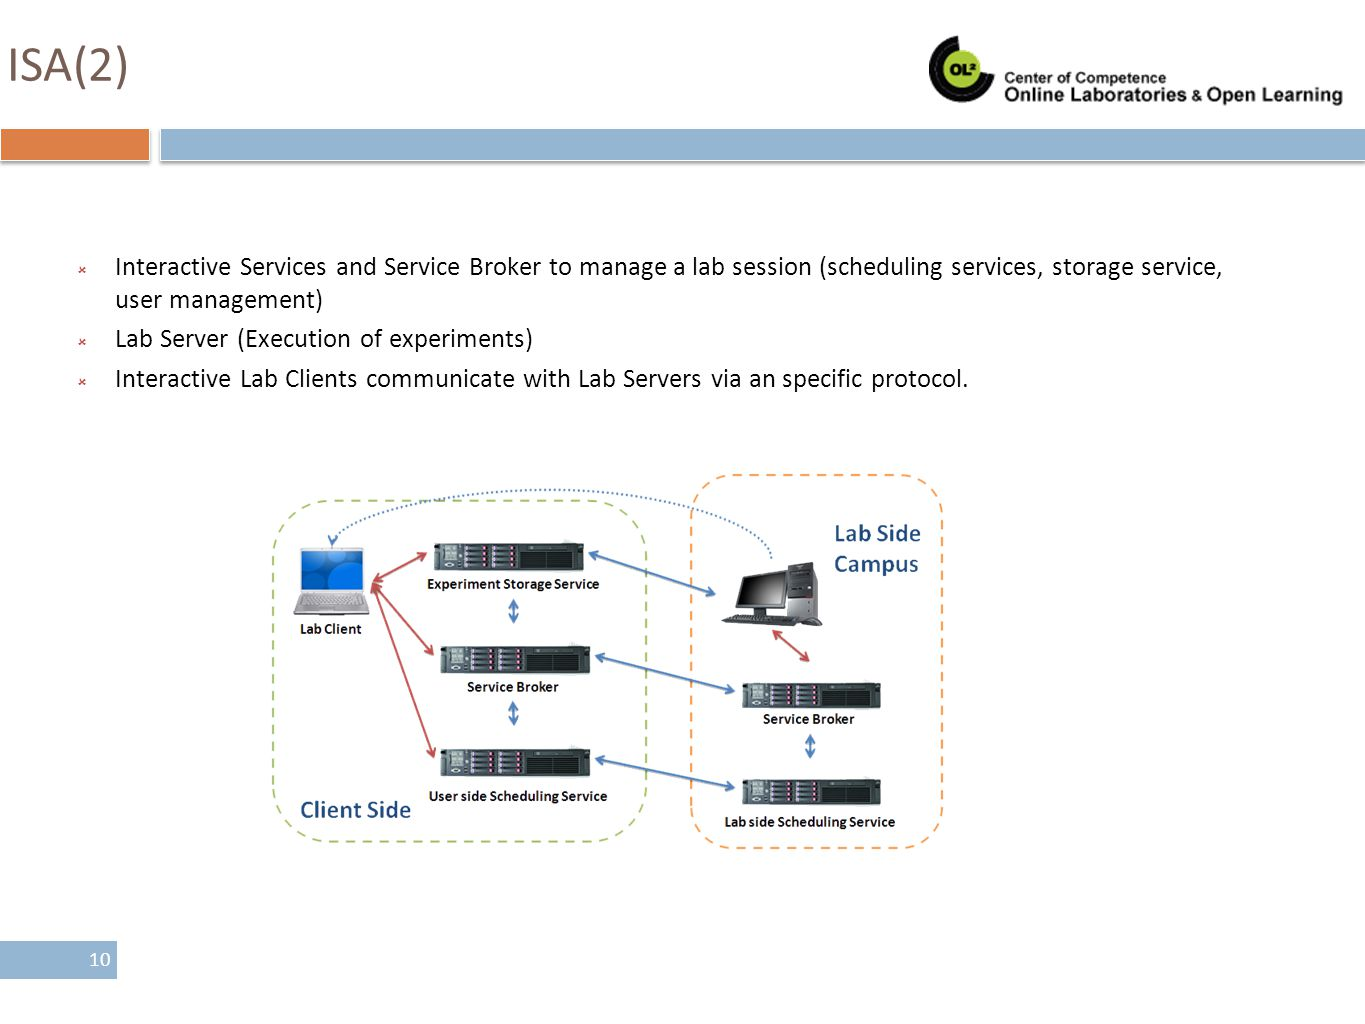 ISA(2) Interactive Services and Service Broker to manage a lab session (scheduling services, storage service, user management)